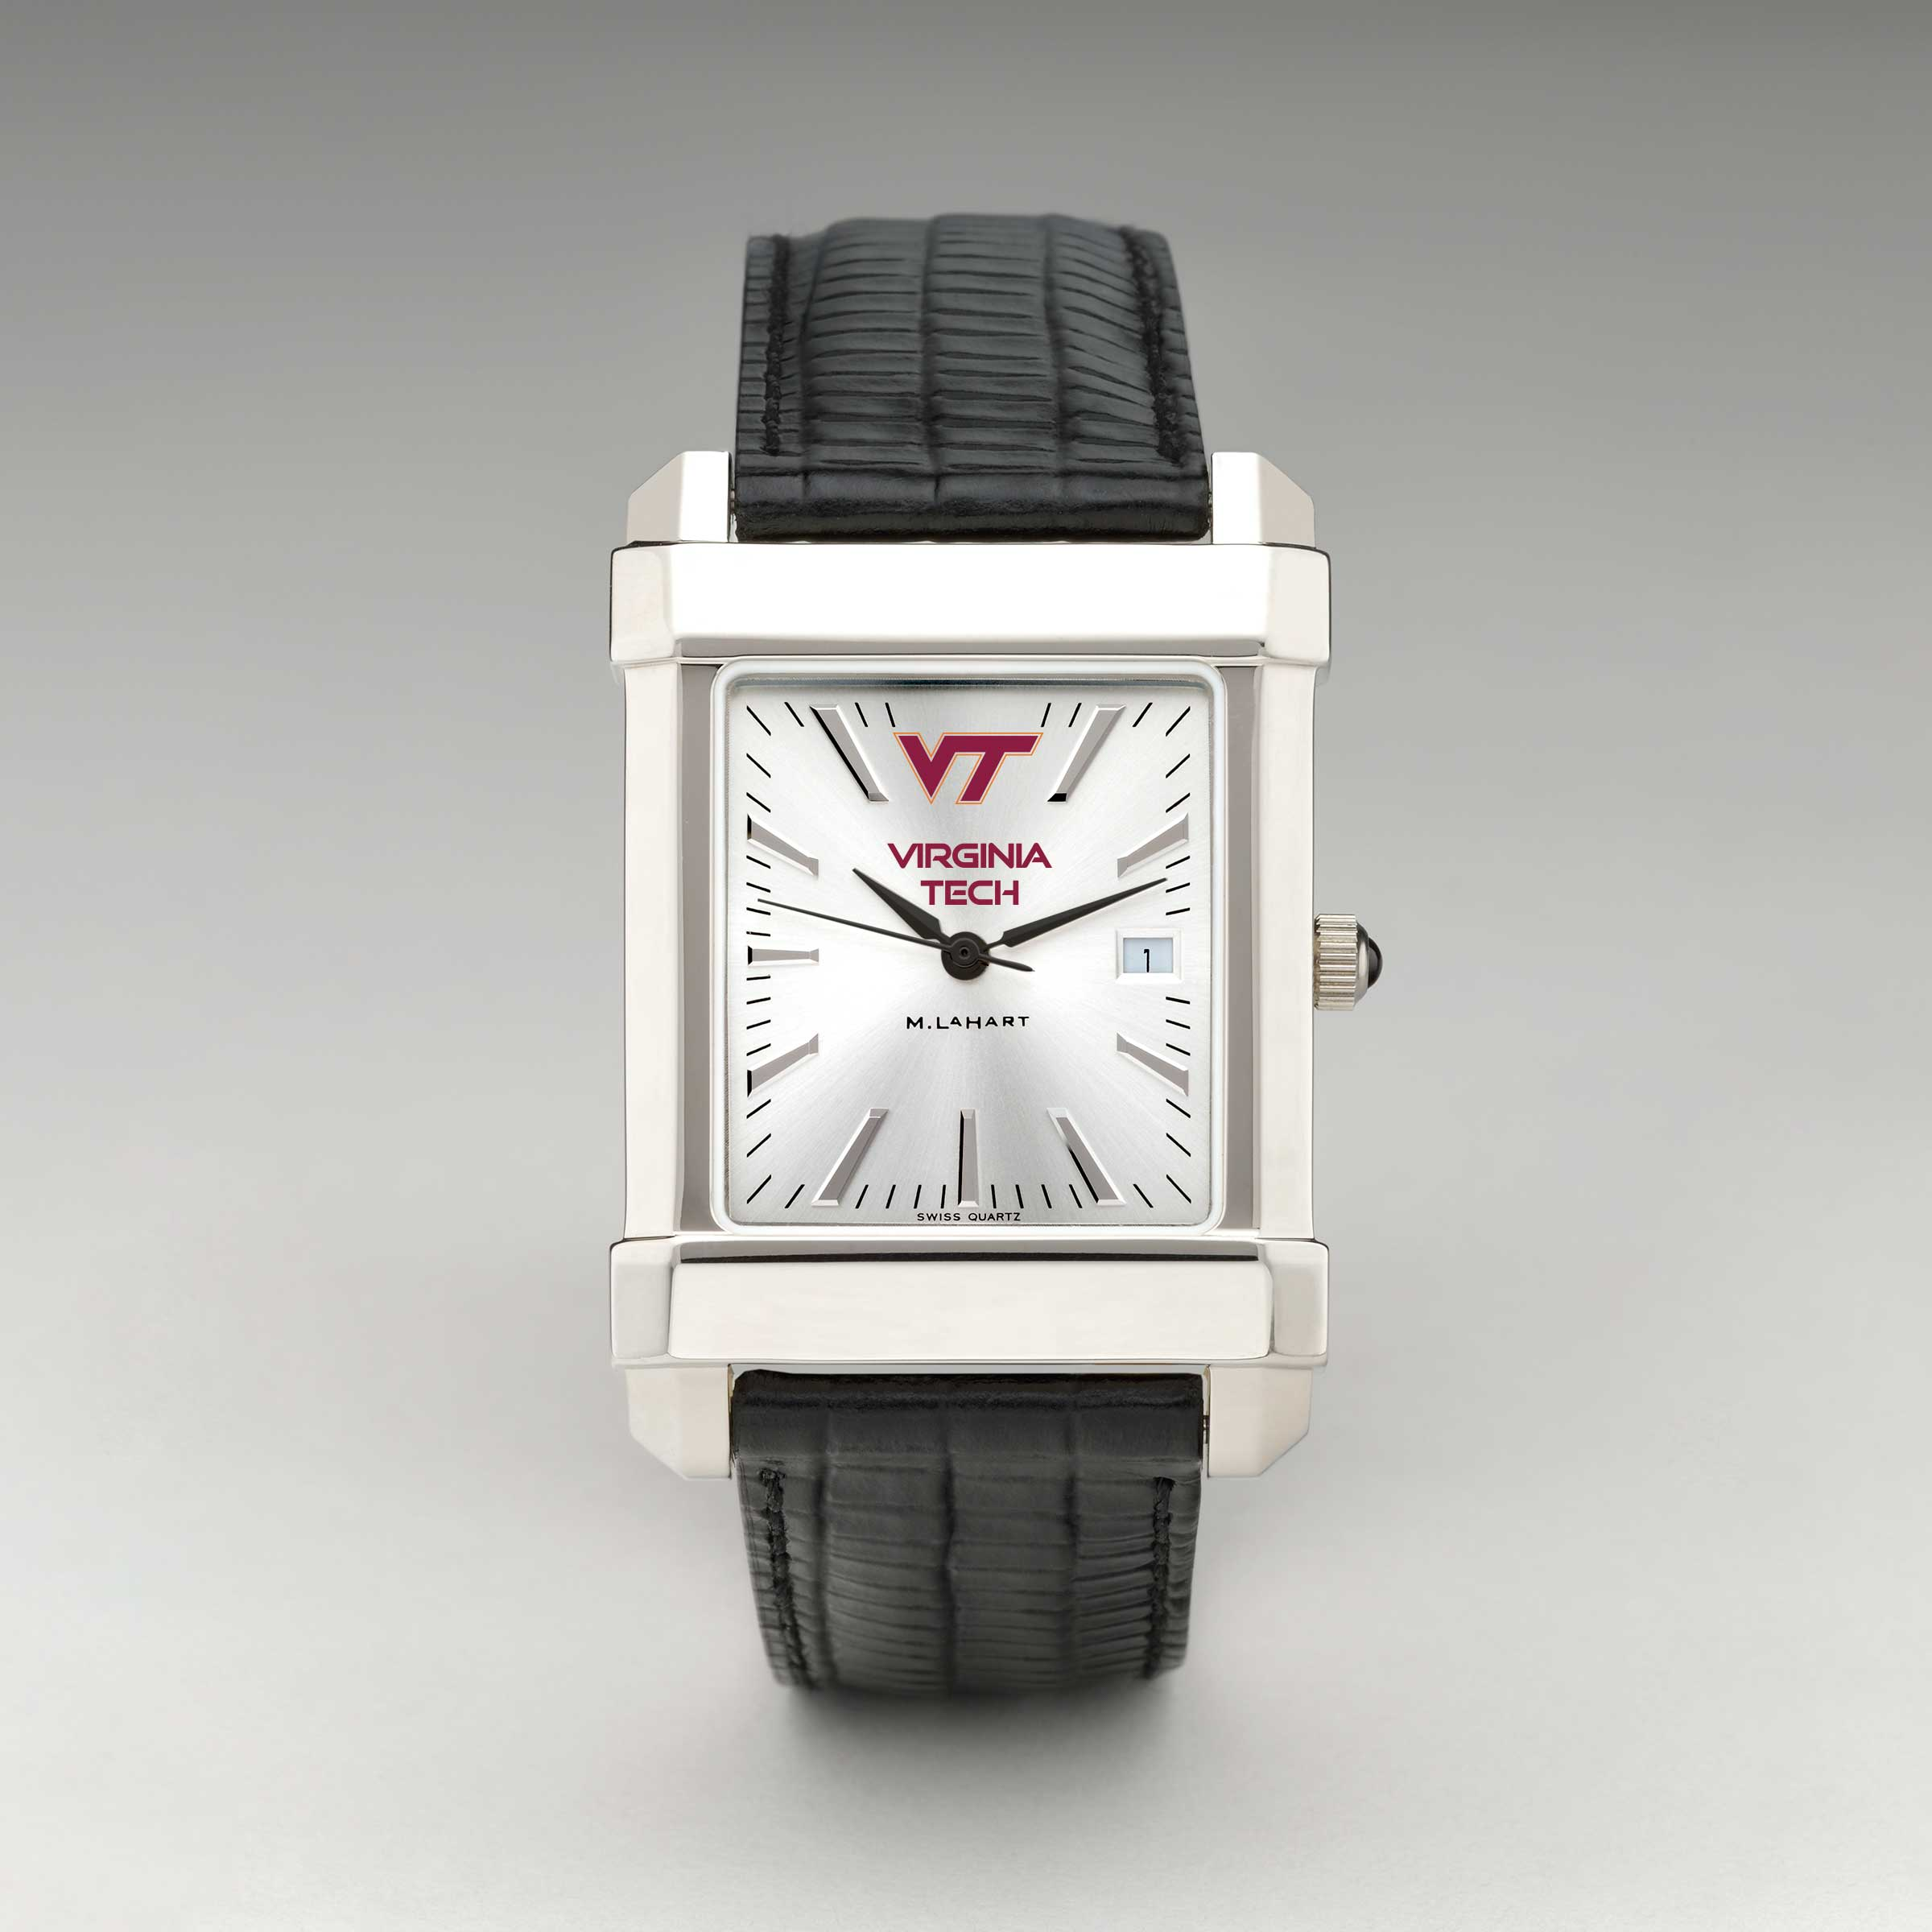 Virginia Tech Men's Collegiate Watch with Leather Strap - Image 2